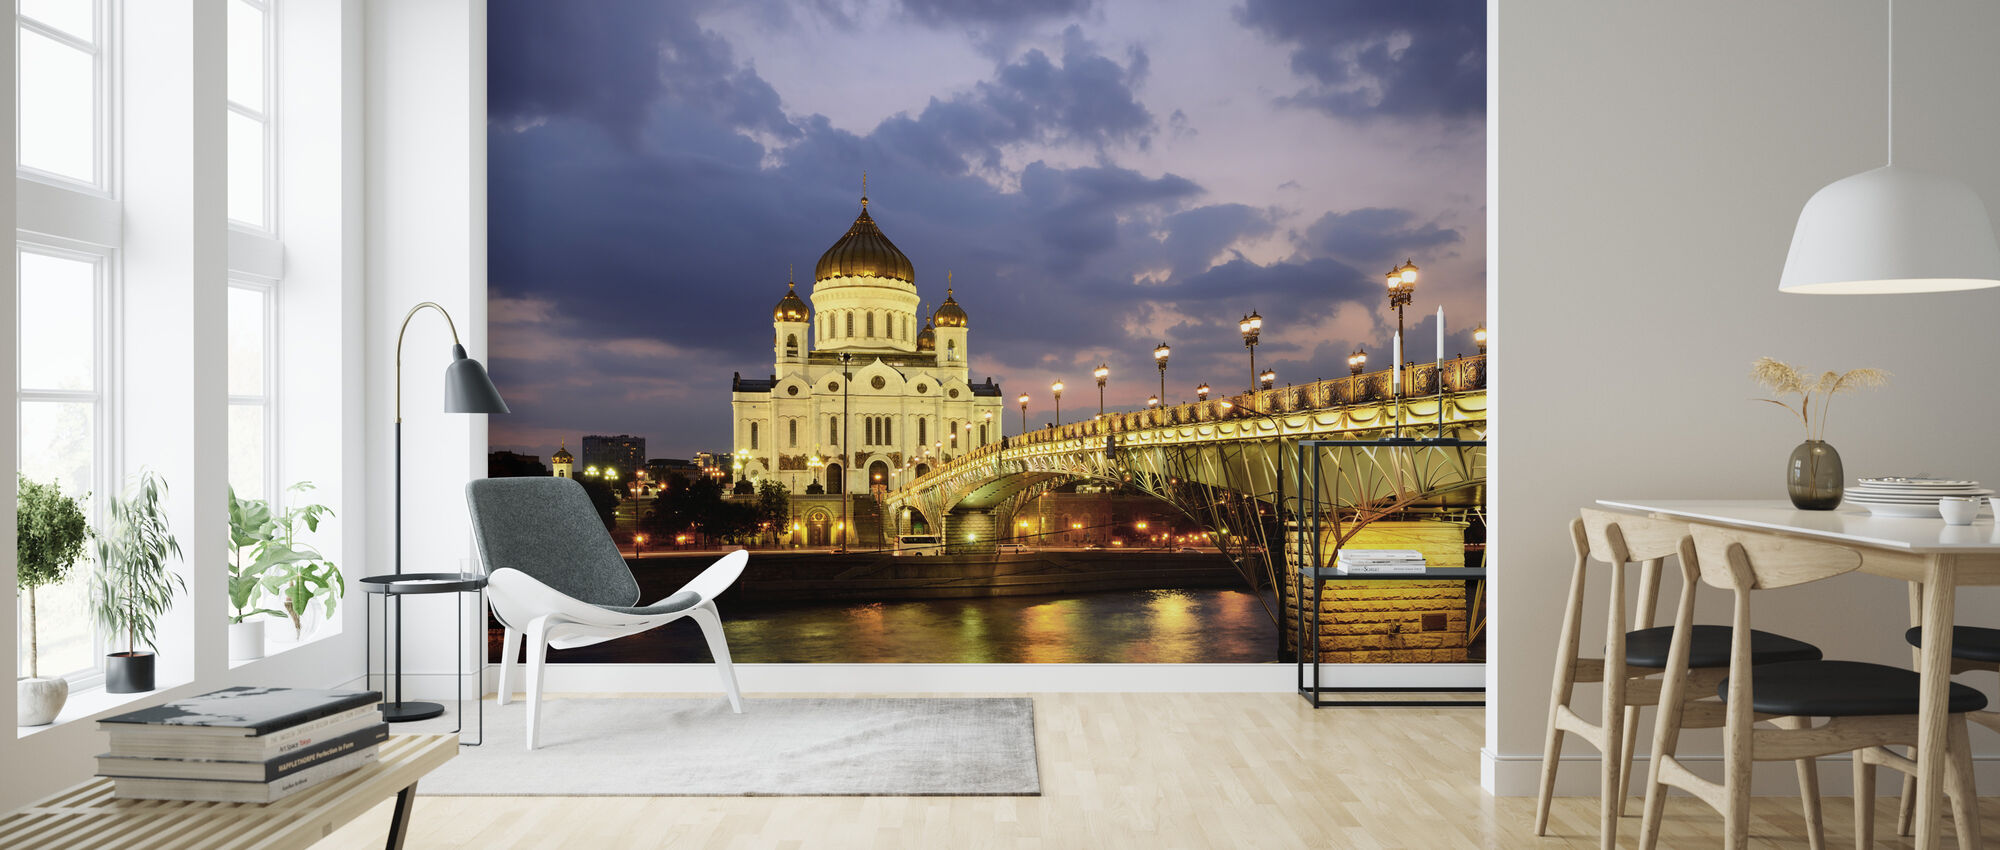 Moscow River at Night - Wallpaper - Living Room